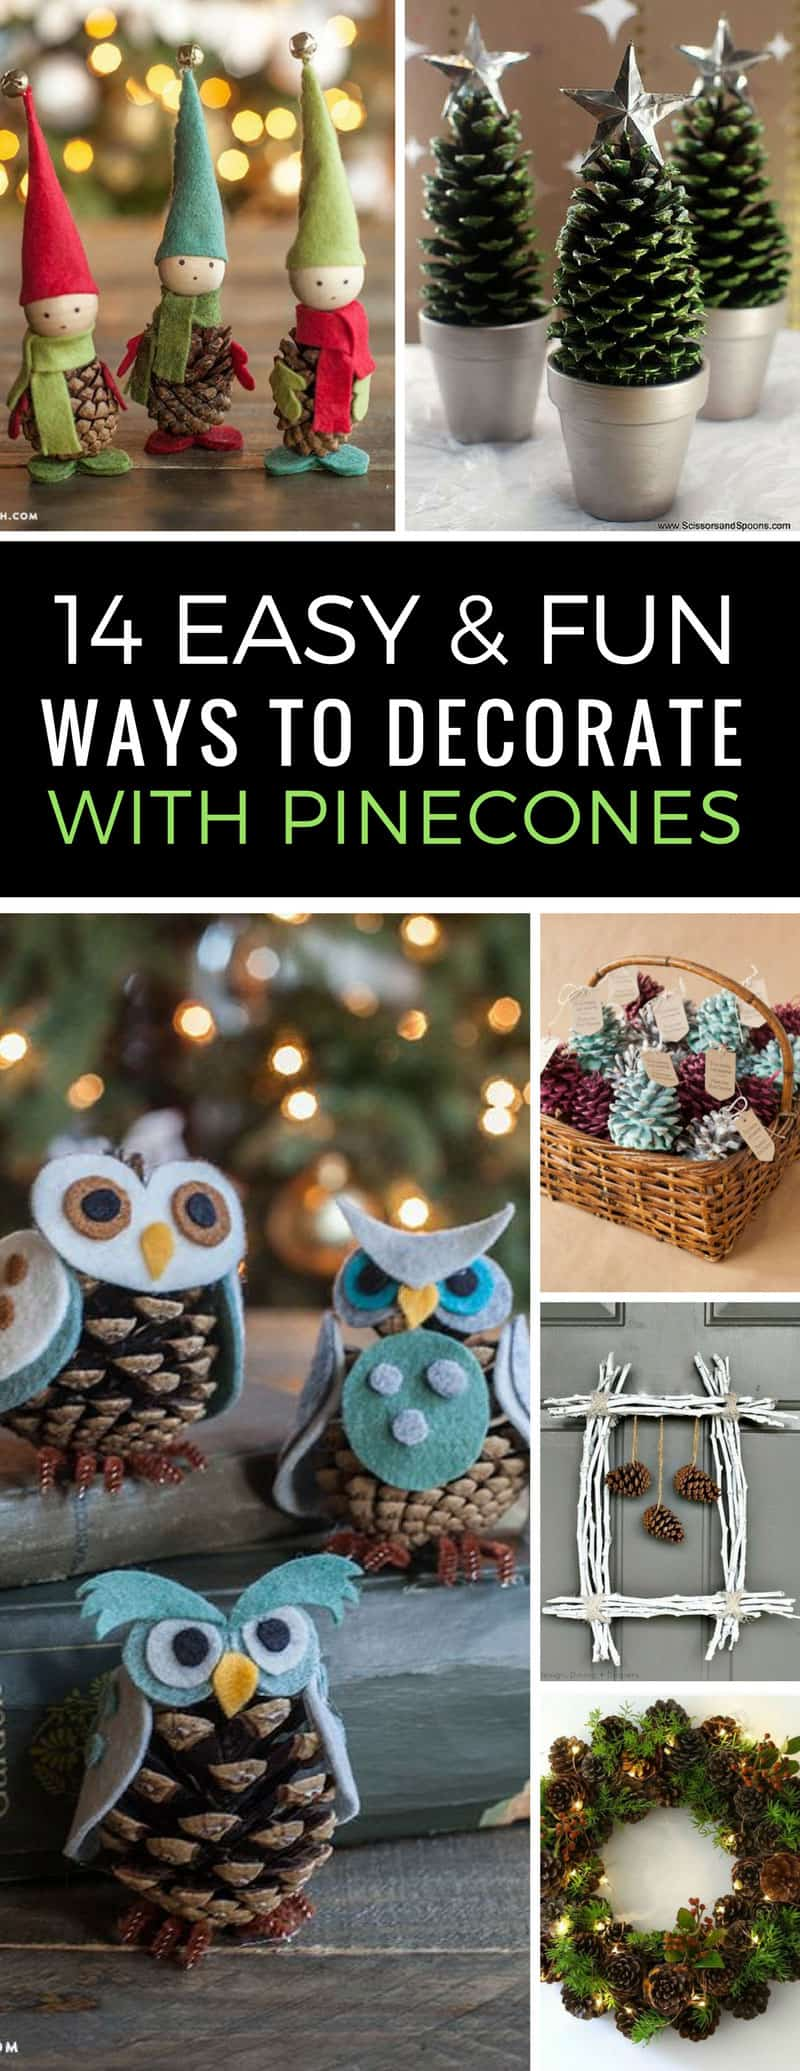 Easy Pinecone Crafts for Christmas - These DIY decor ideas are just what I needed since the kids always collect more pinecones than we know what to do with! Love that they look great but are easy to make and inexpensive too! | Pinecone Decor | Christmas DIY | Just Bright Ideas